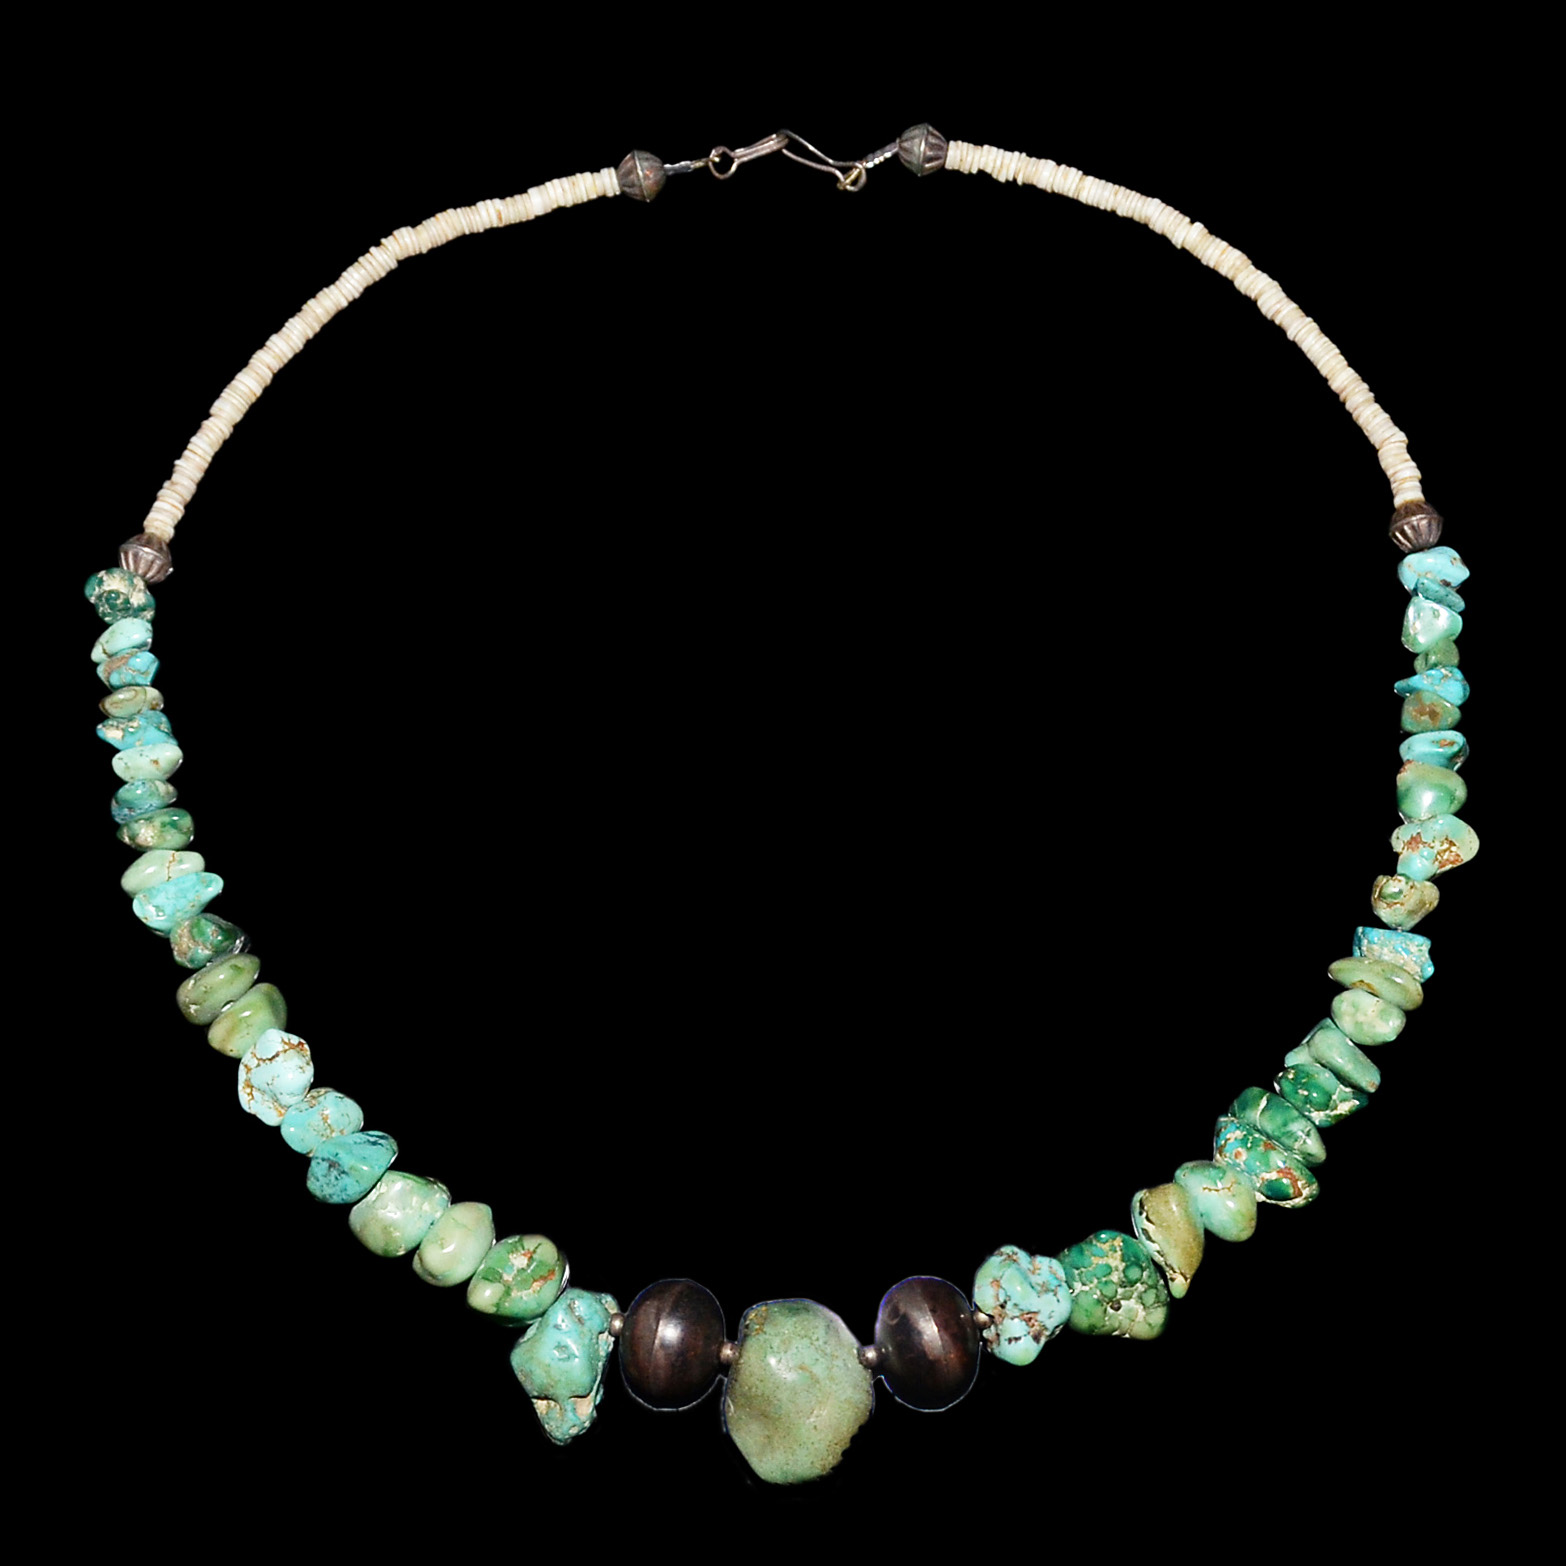 Lot 23 - 天然意形綠松石銅珠項鏈掛飾 Turquoise Bead Necklace in Naturalistic Form with Copper Beads Diameter: 7 in (17.8